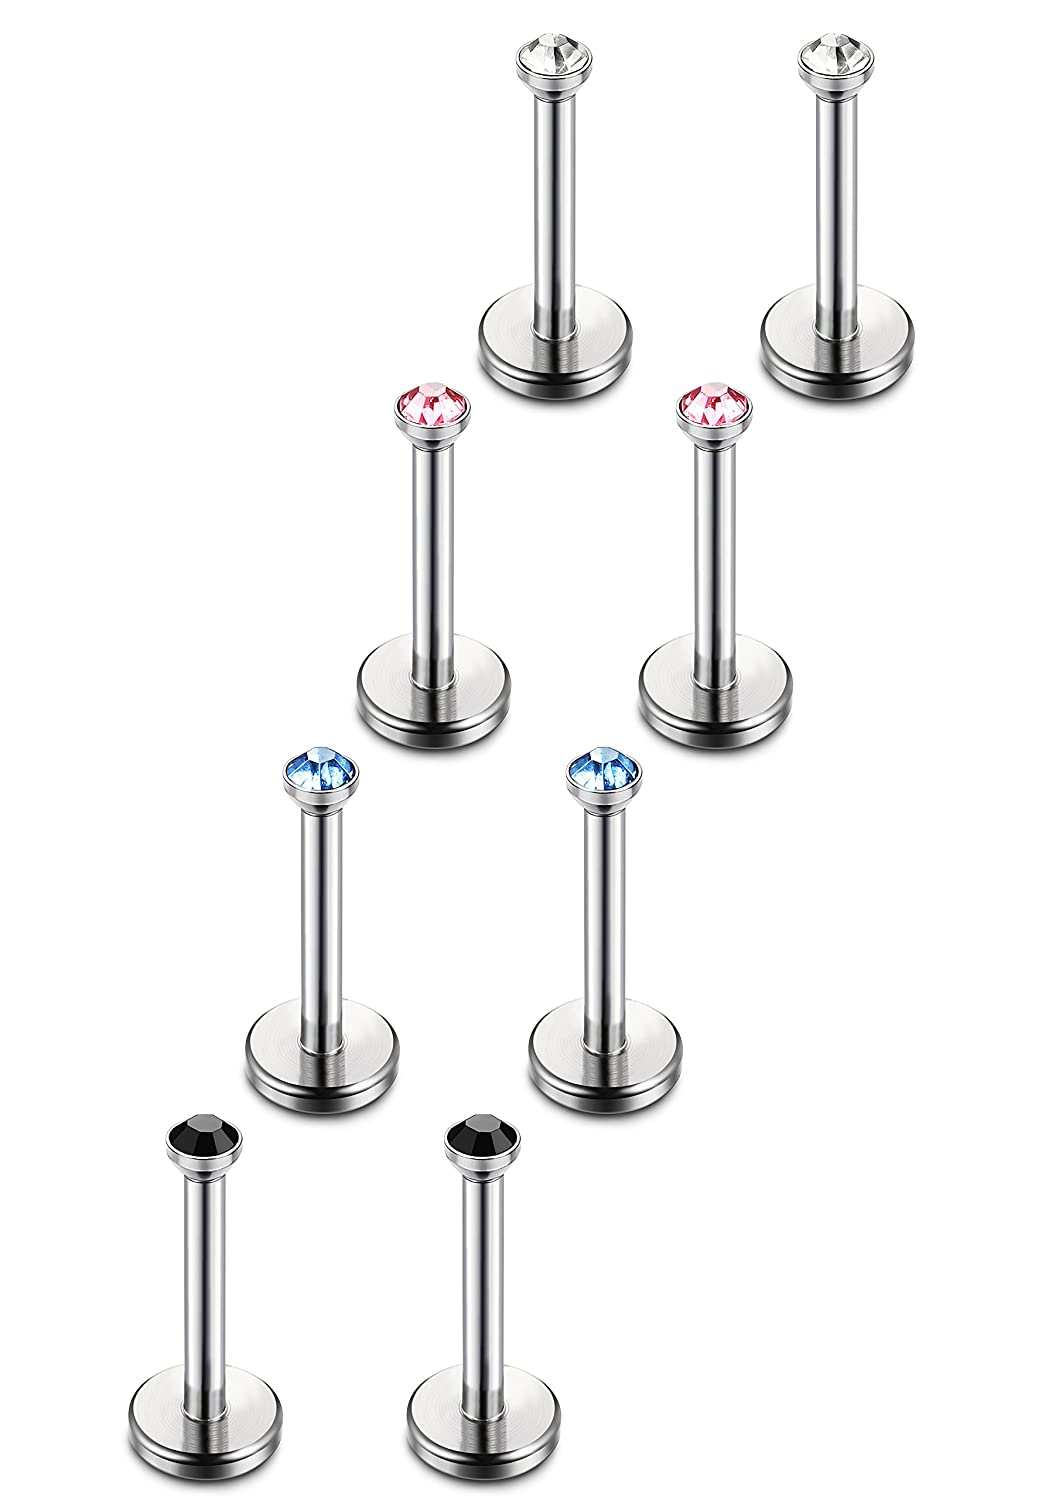 Besteel 8pcs 18G Stainless Steel Lip Rings Labret Monroe Nose Studs Ear Piercings Tragus 6-12mm Bar Length P0100-4*6mm